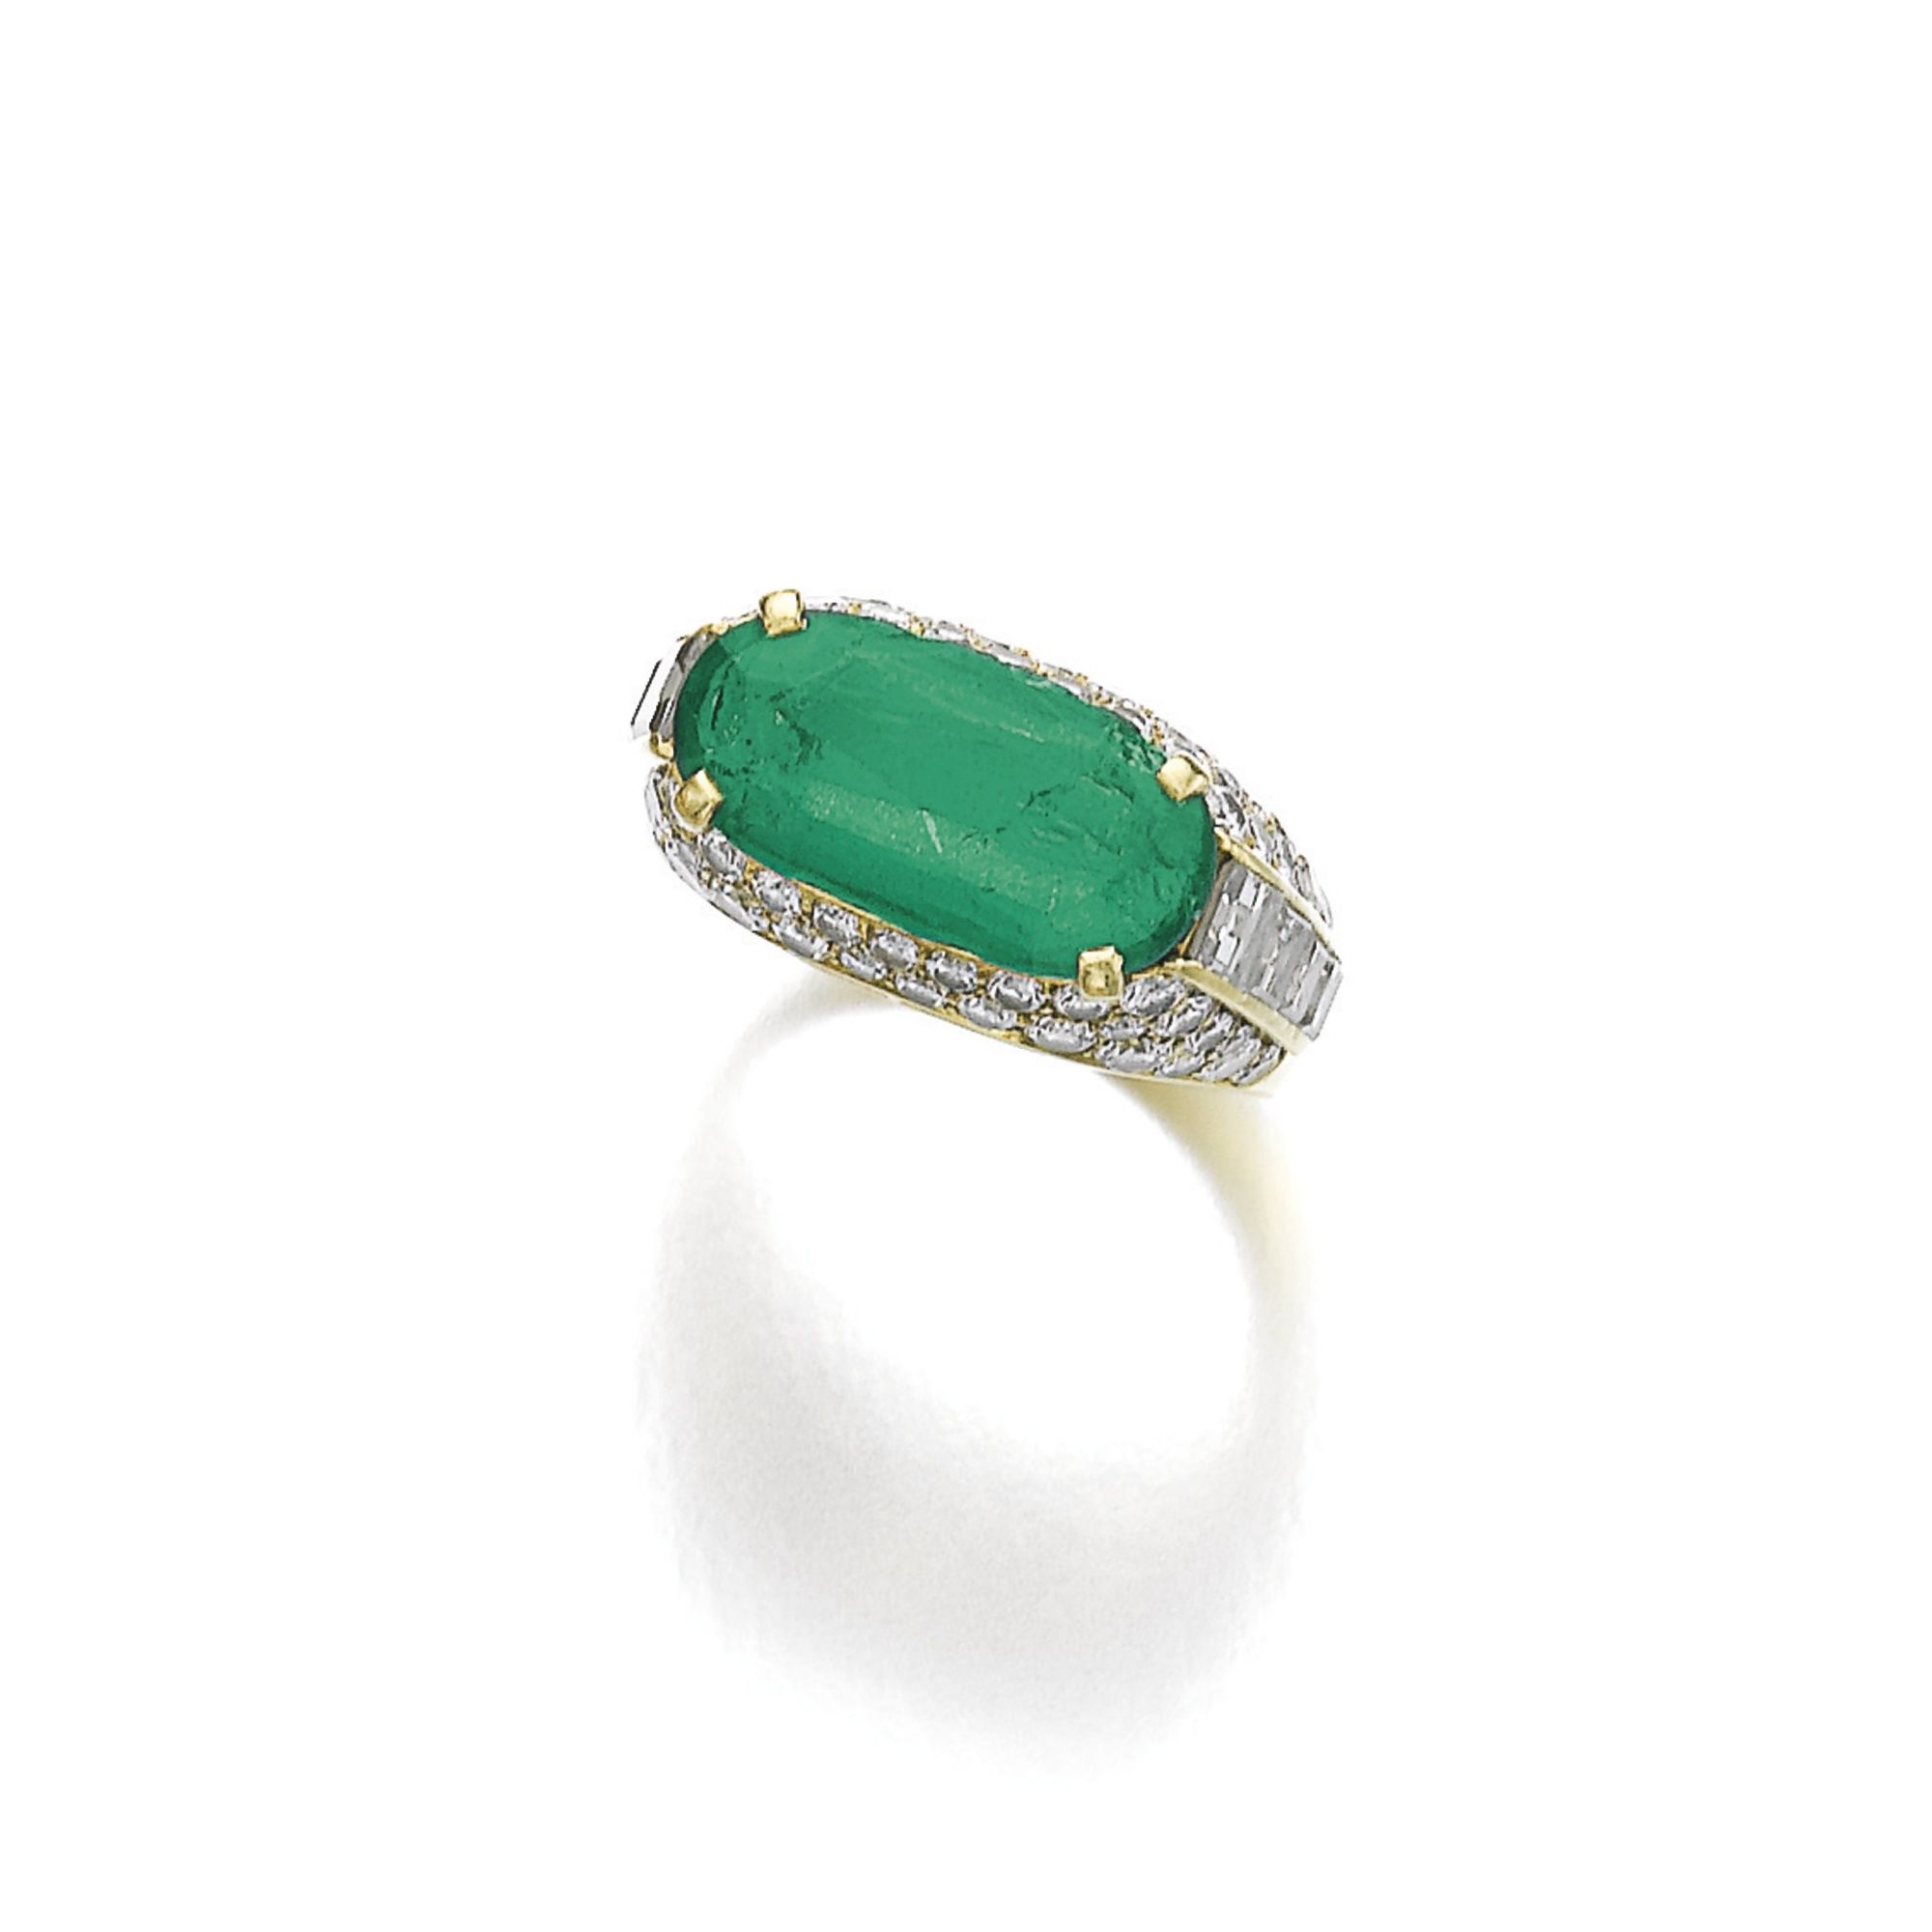 katz ring large moda by of martin operandi oval a loading green one kind emerald